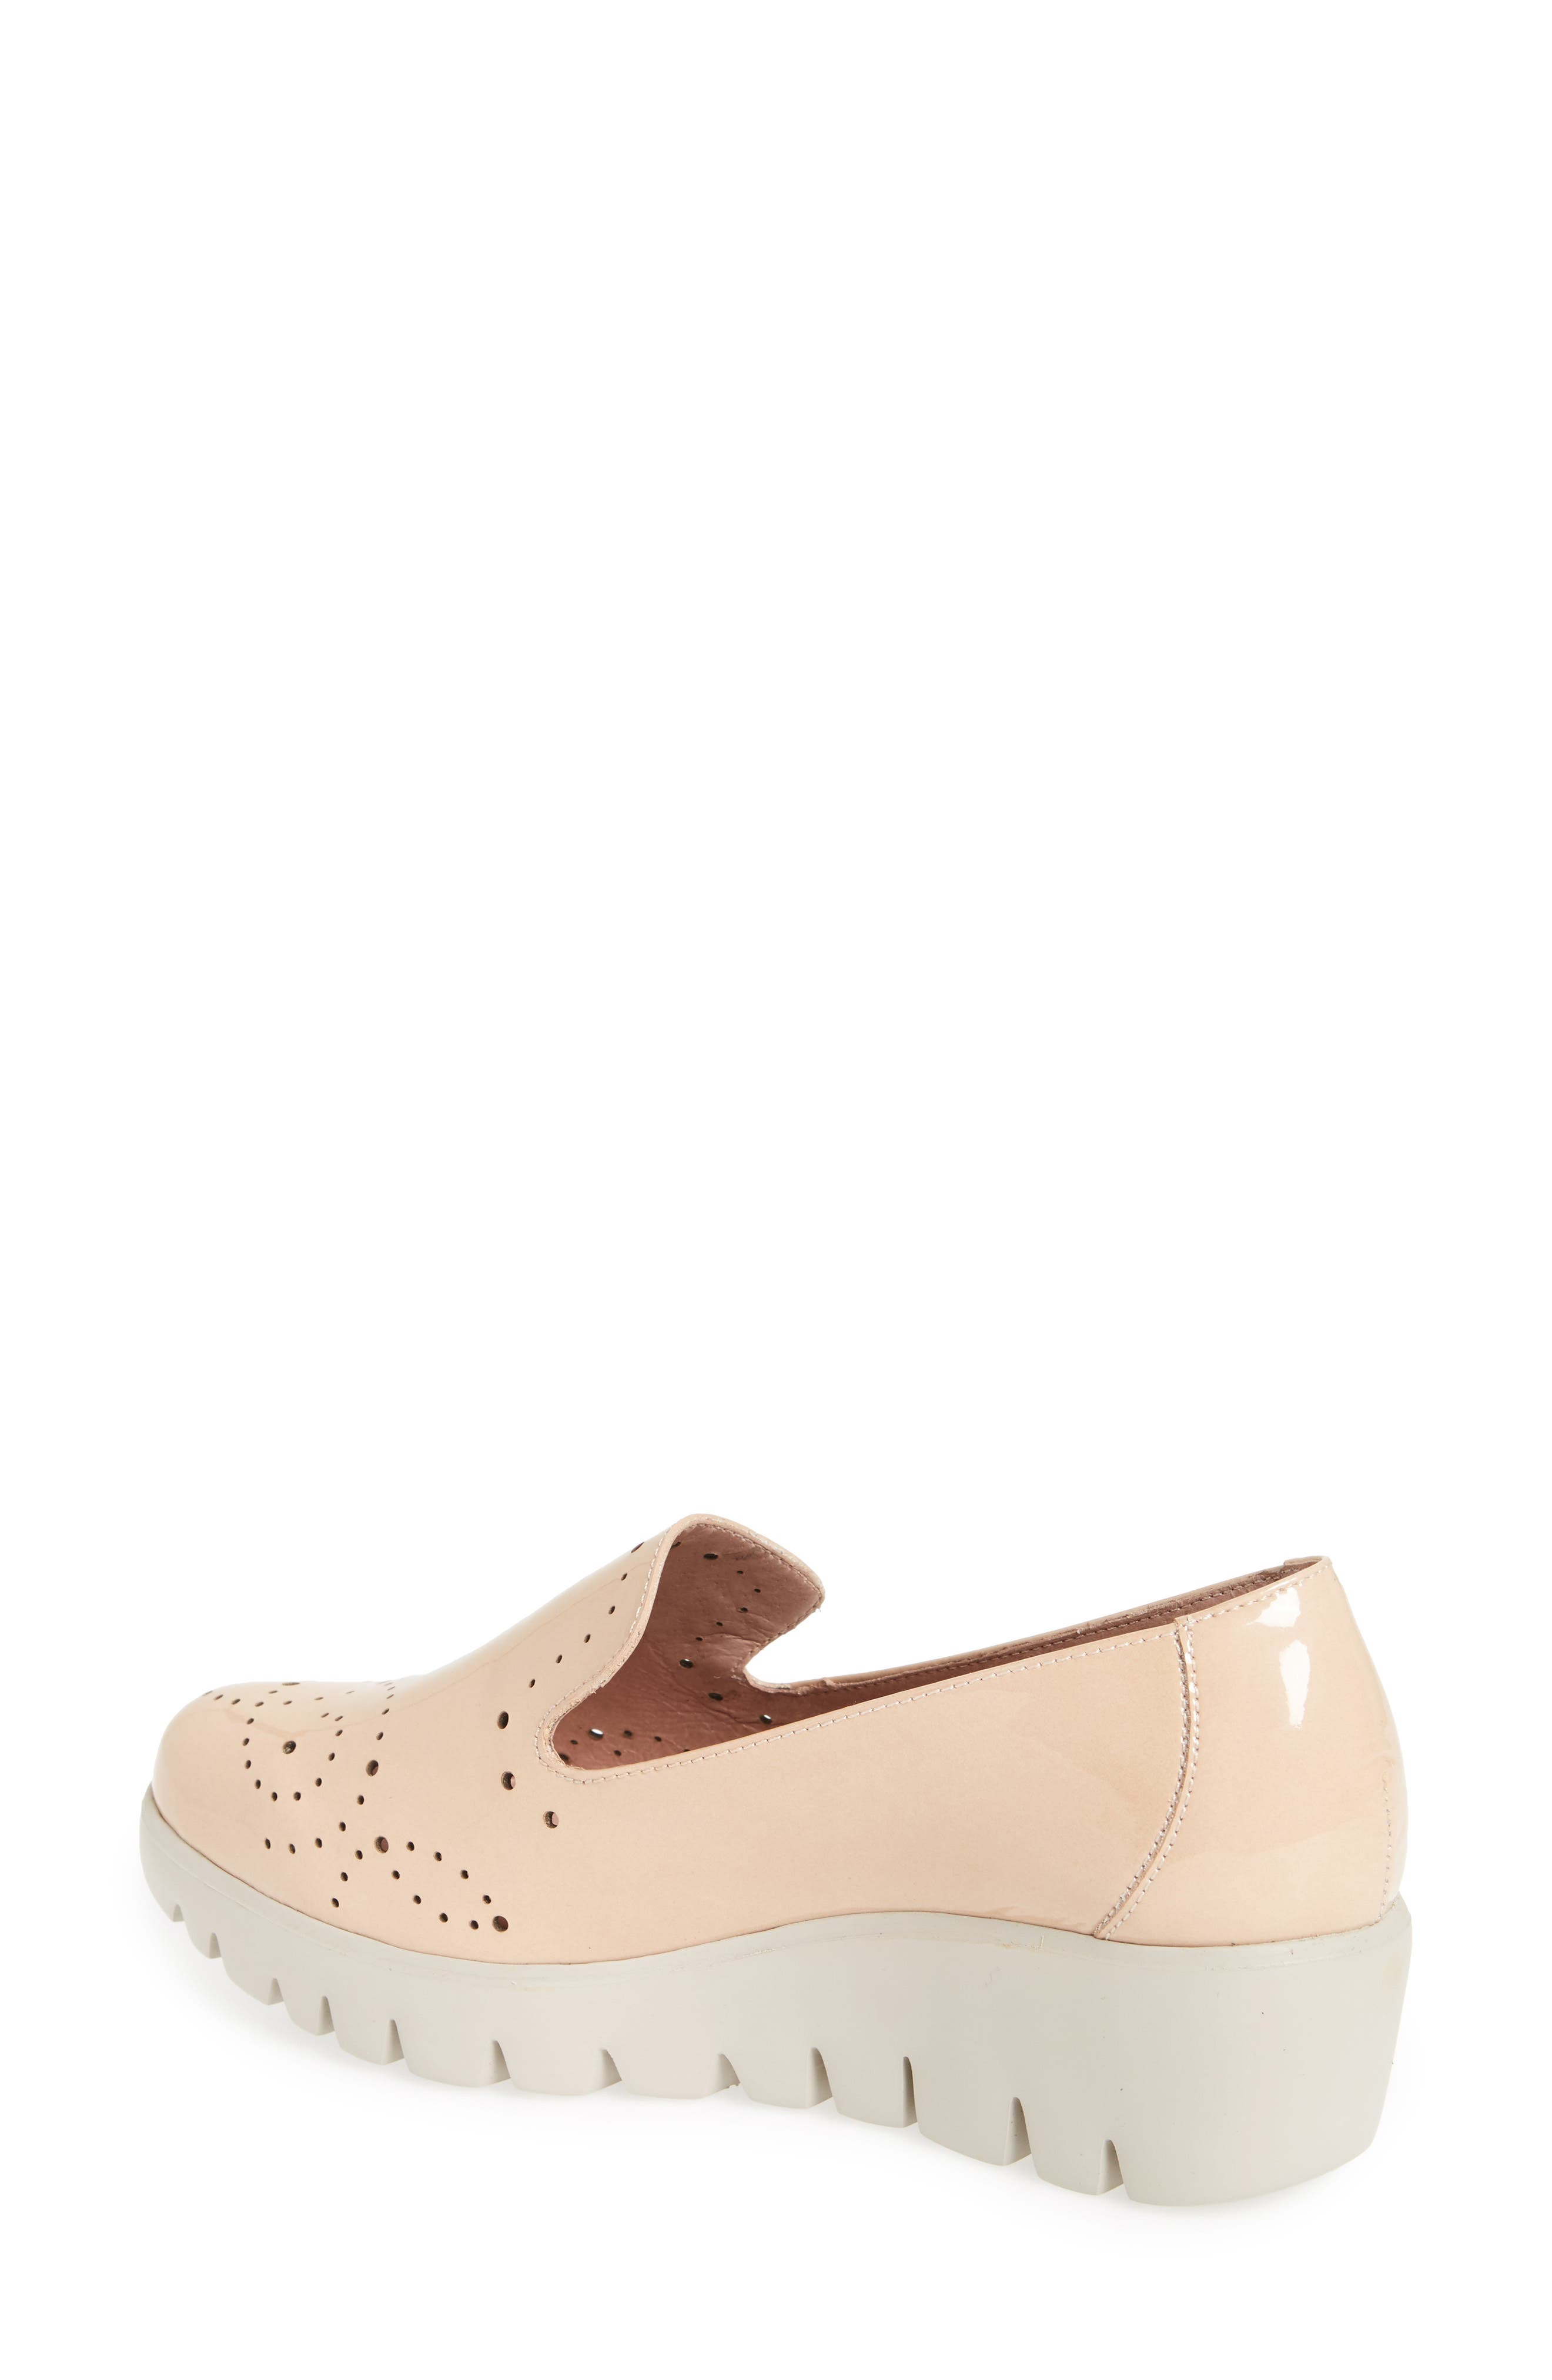 C-33114 Loafer Wedge,                             Alternate thumbnail 2, color,                             Palo Beige Leather